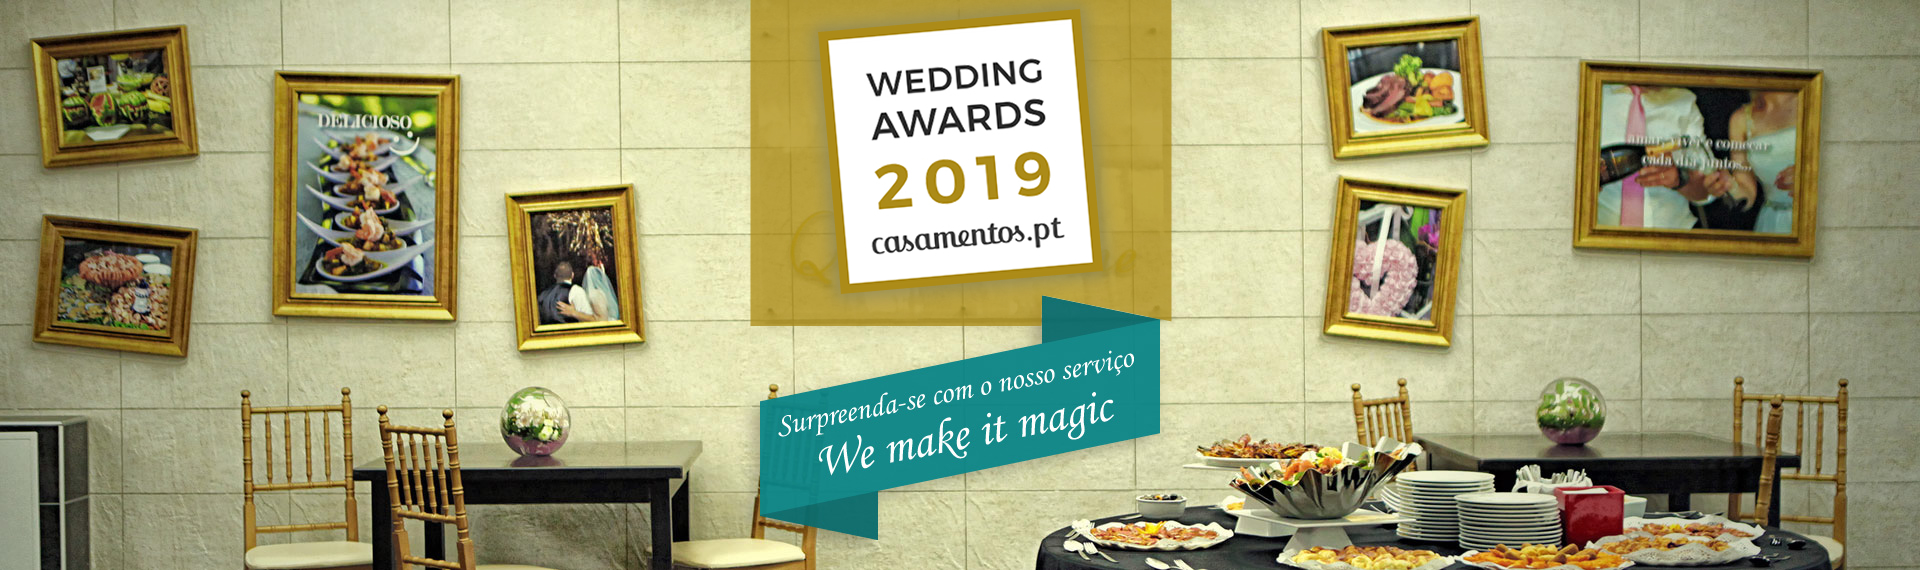 WEDDING AWARDS 2019